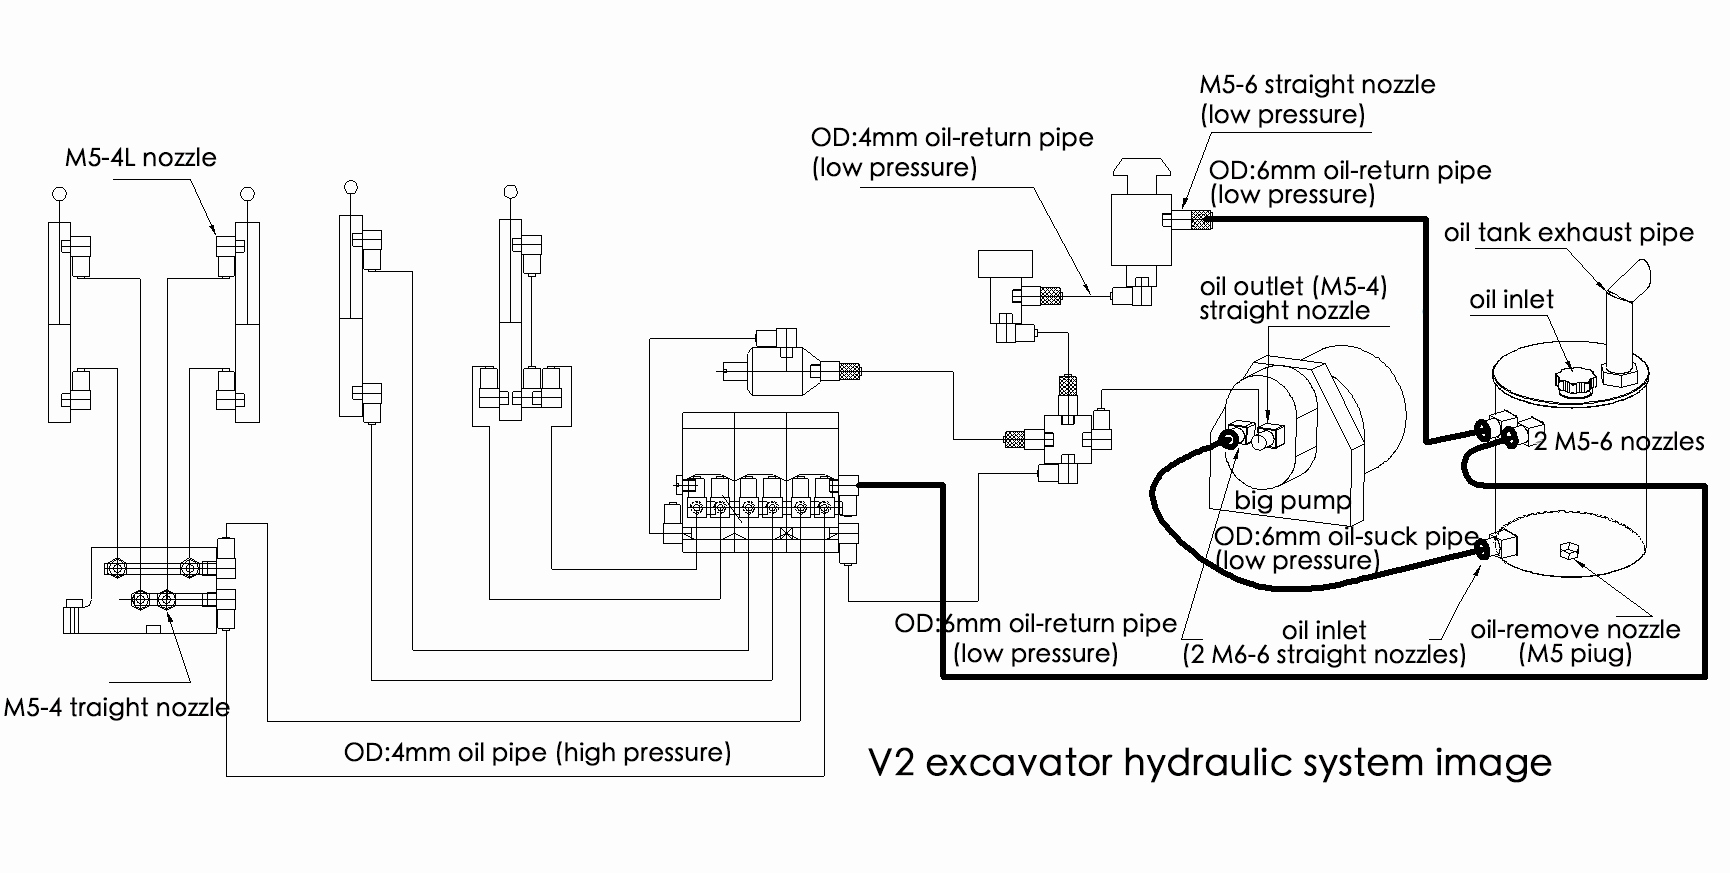 spx stone hydraulic pump wiring diagram Download-12v hydraulic pump wiring diagram Collection Full Size of Wiring Diagram 12 Volt Hydraulic Pump 13-b